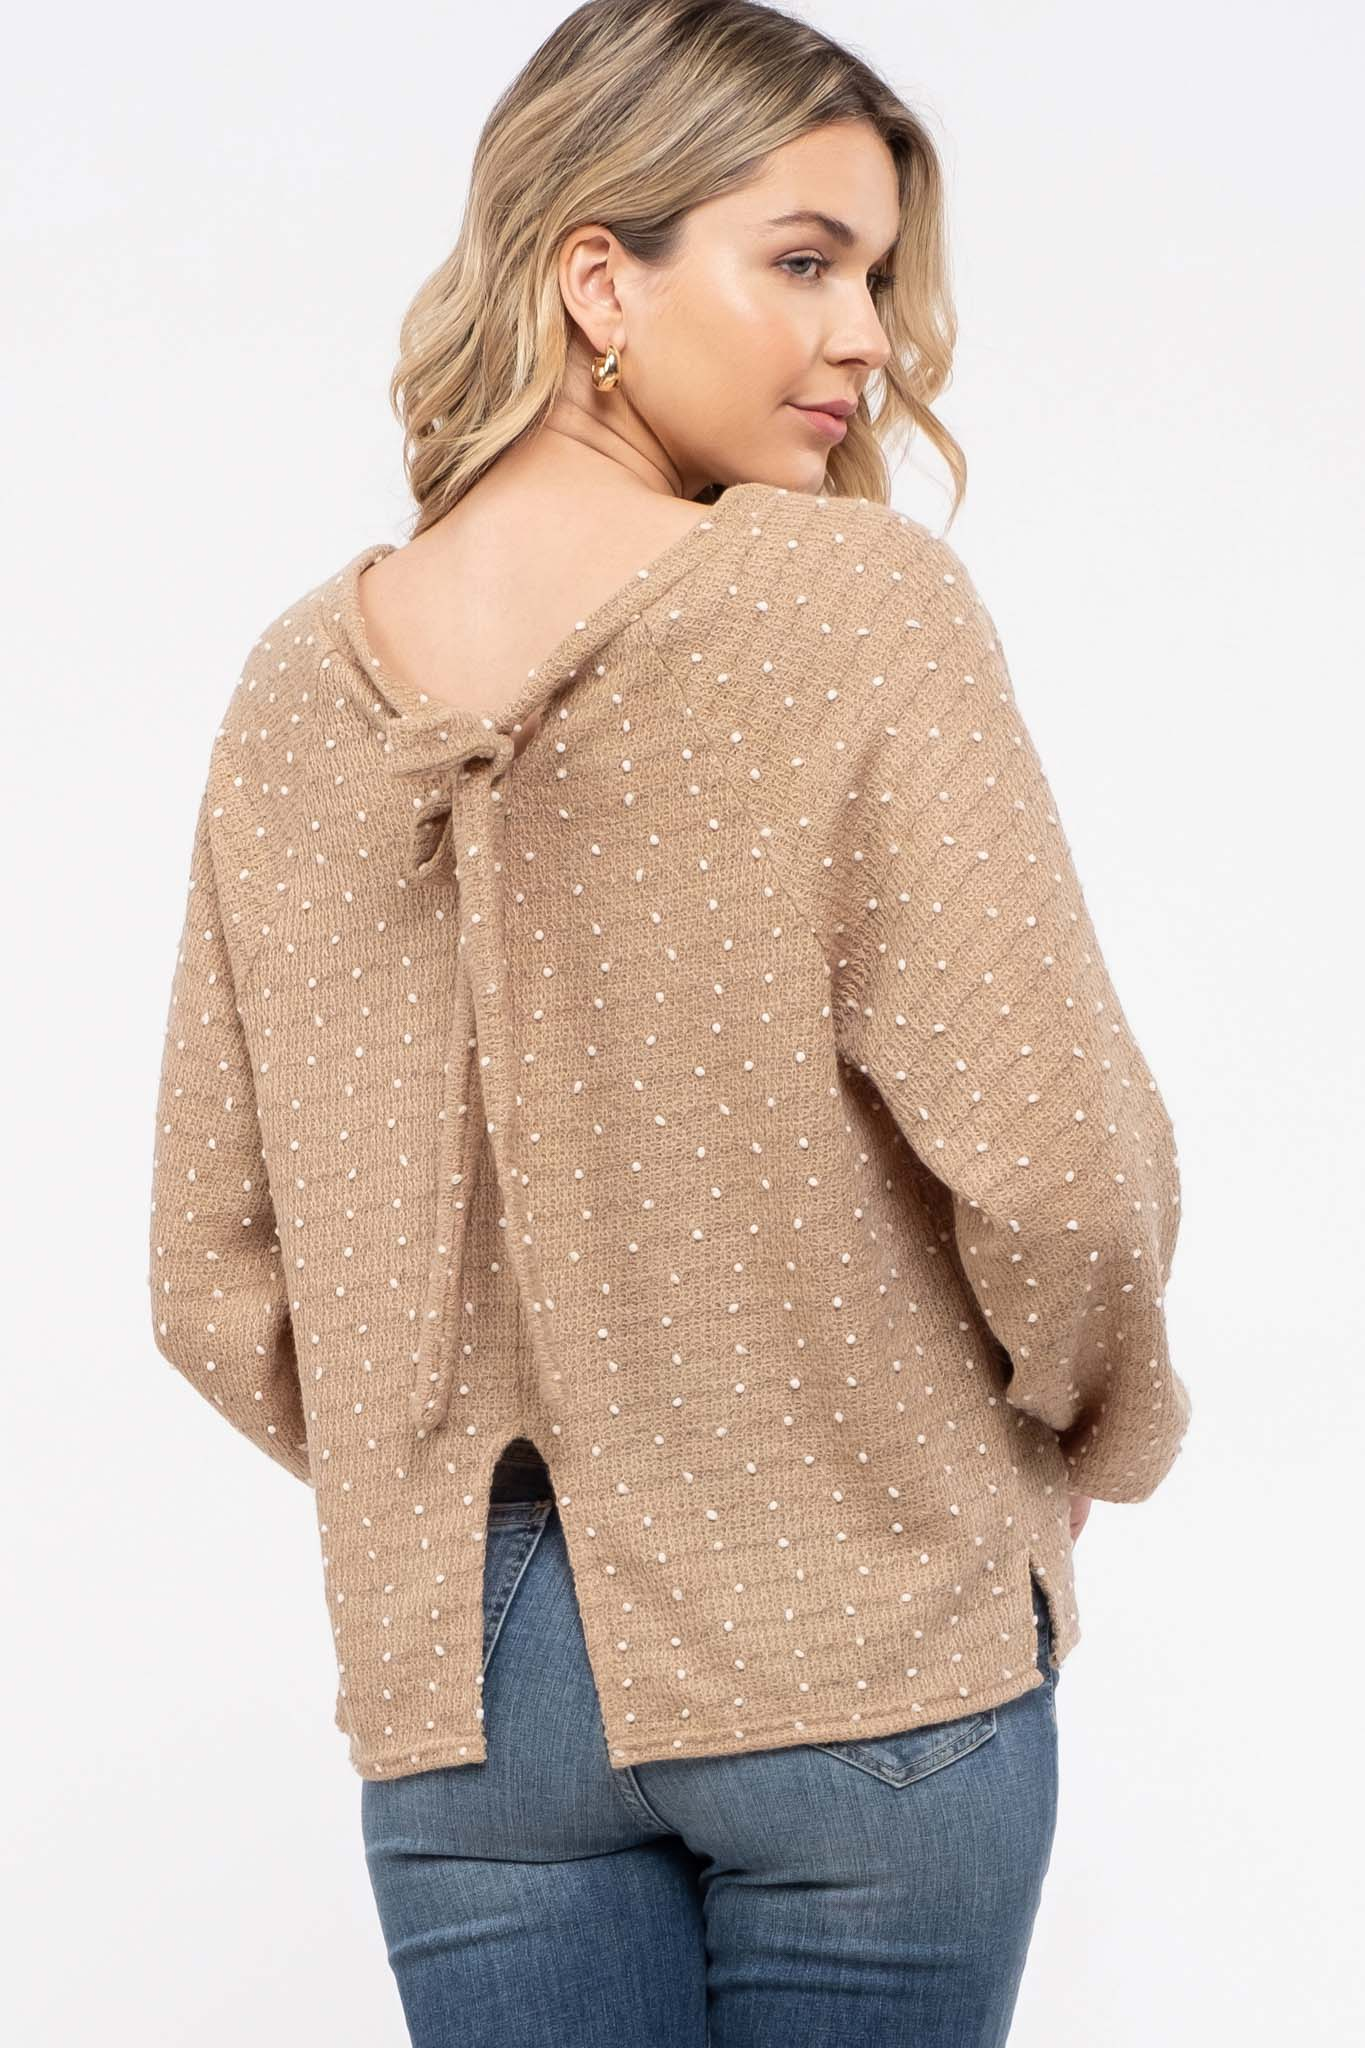 Tie-Back Swiss Dot Knit Sweater